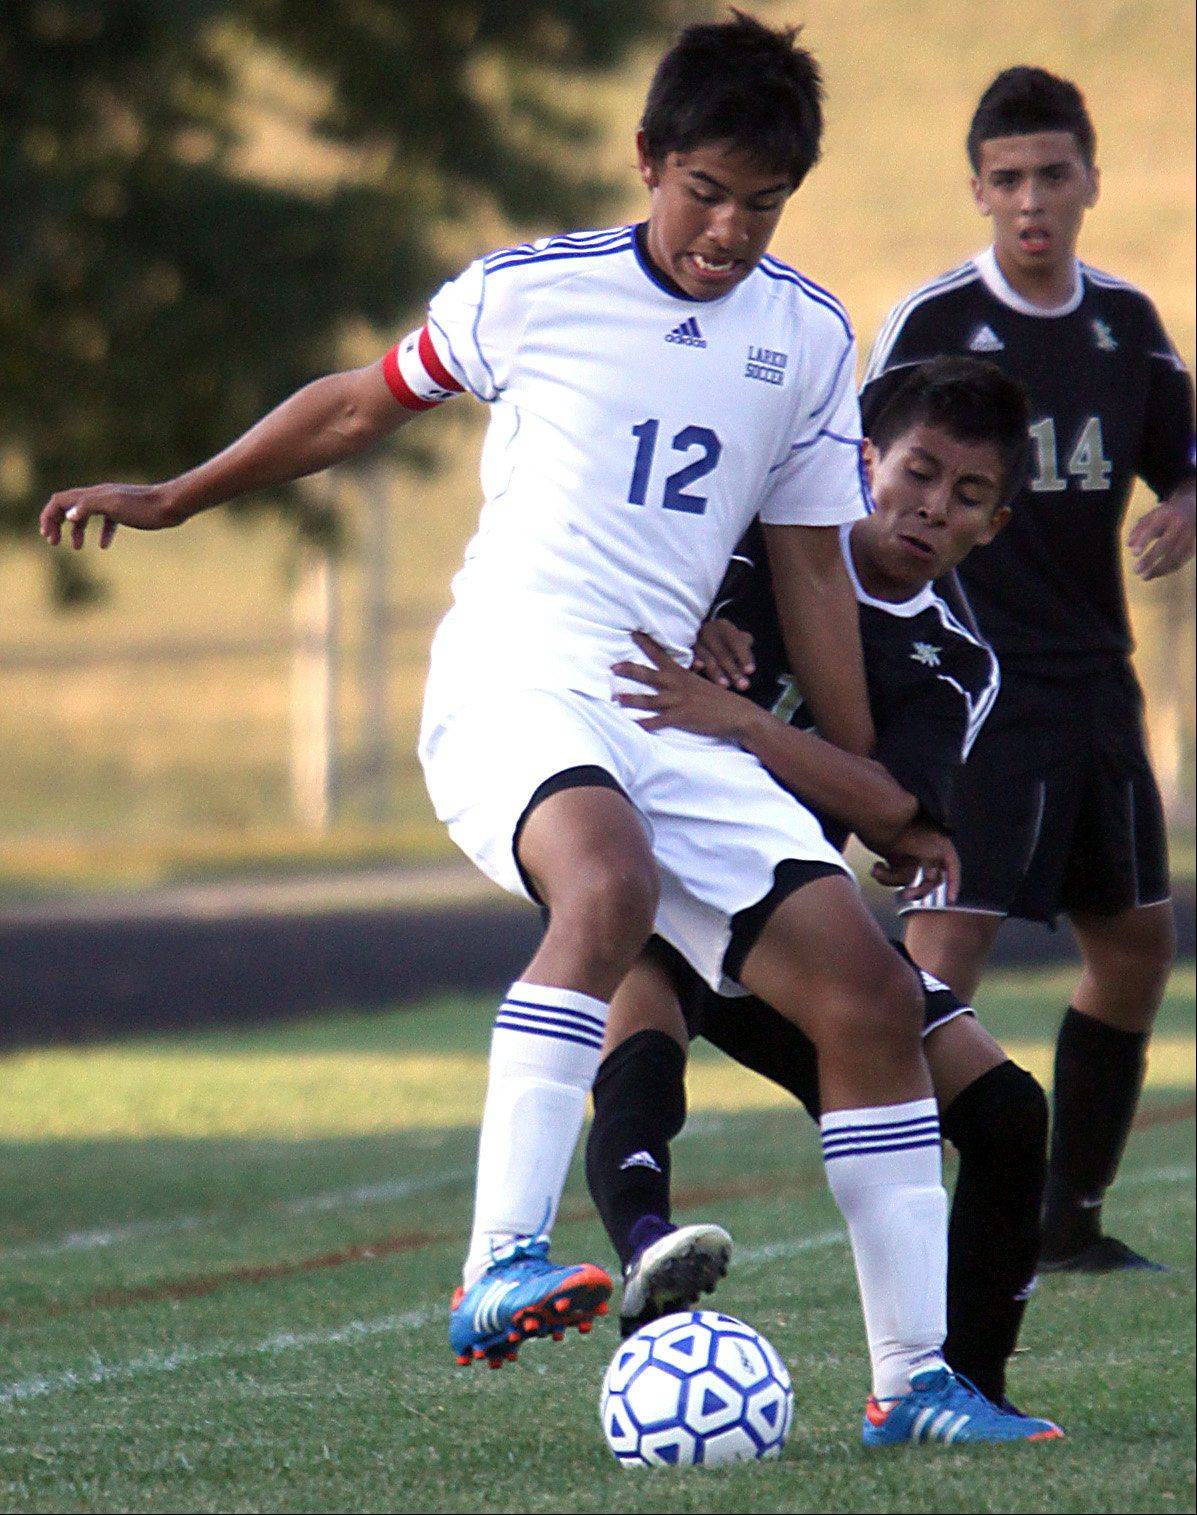 Larkin�s Tony Hernandez, left, battles Streamwood�s Edwin Rueda, right, for control of the ball during a varsity soccer game at Memorial Field in Elgin on Thursday night.